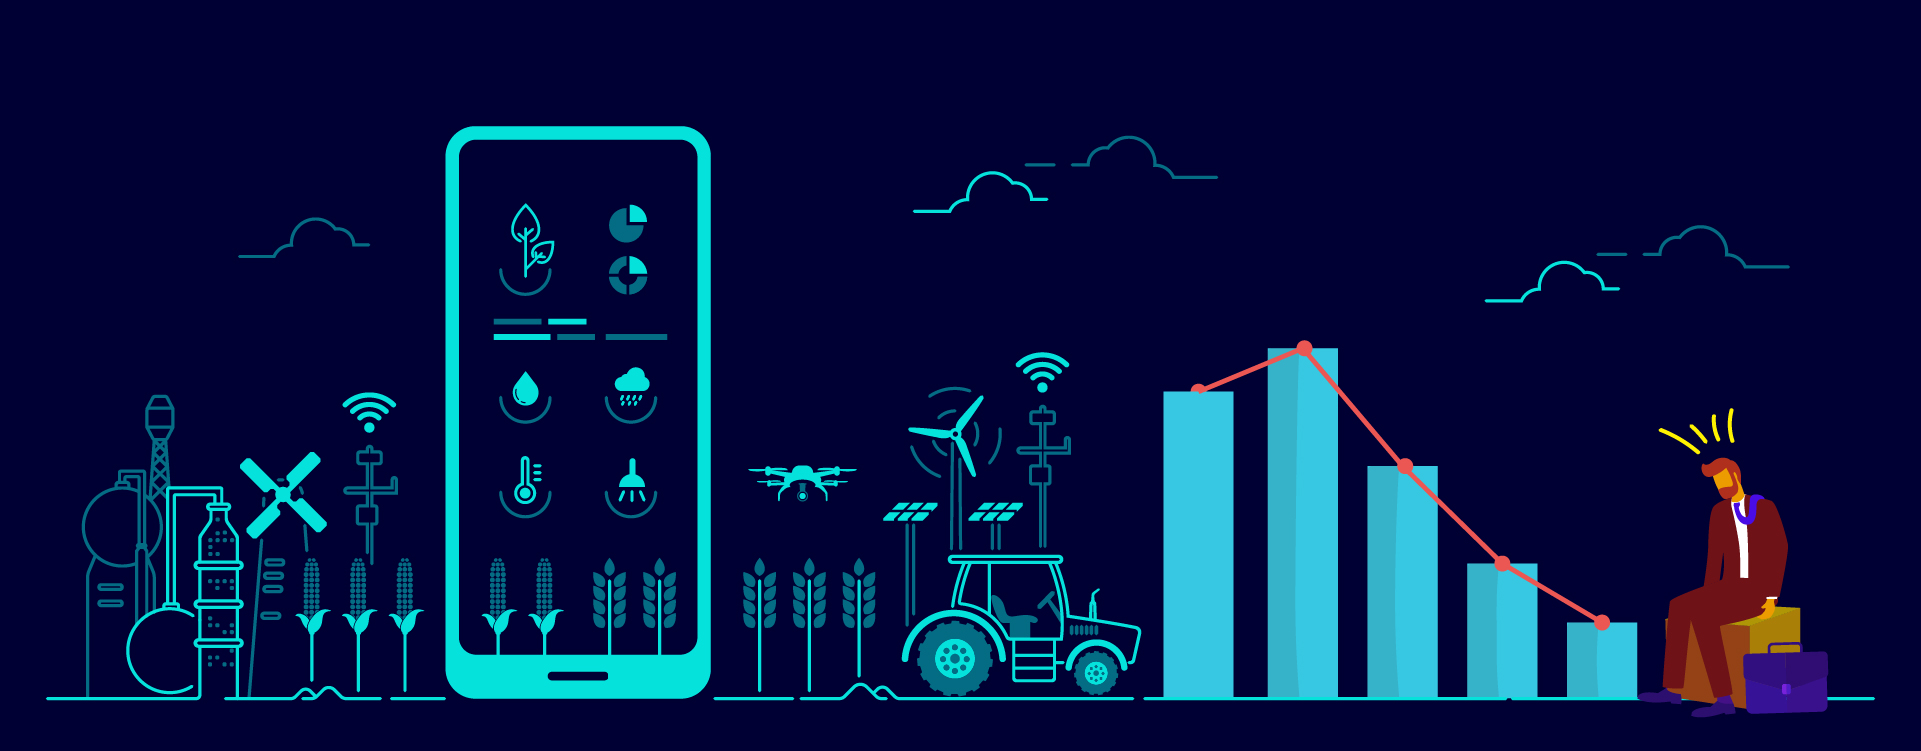 Top 10 reasons for agritech start-ups to fail.